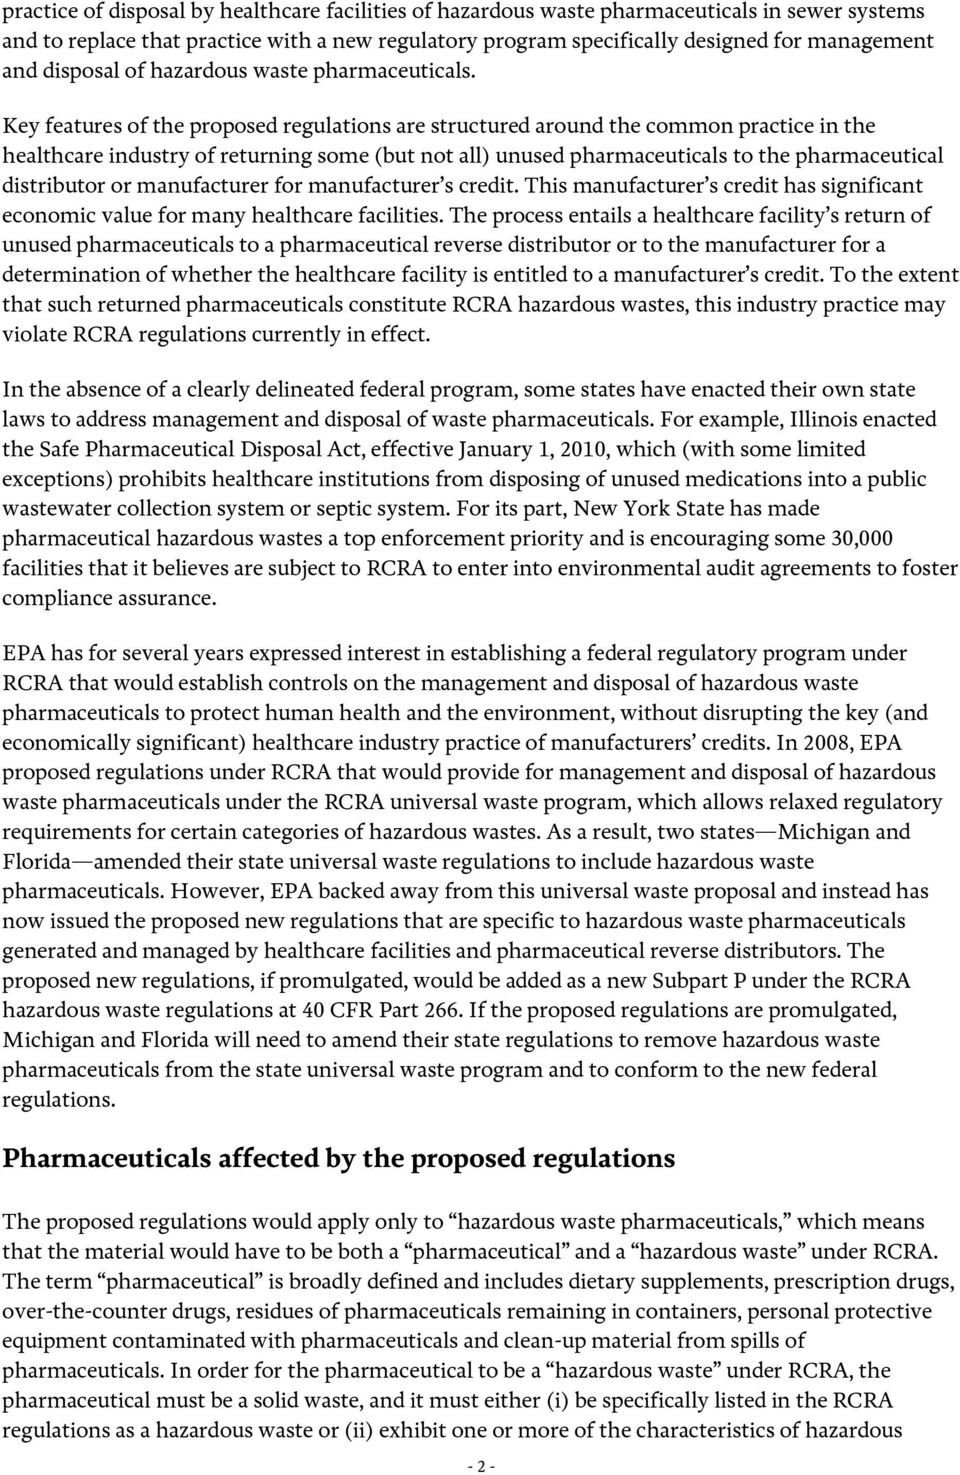 Key features of the proposed regulations are structured around the common practice in the healthcare industry of returning some (but not all) unused pharmaceuticals to the pharmaceutical distributor